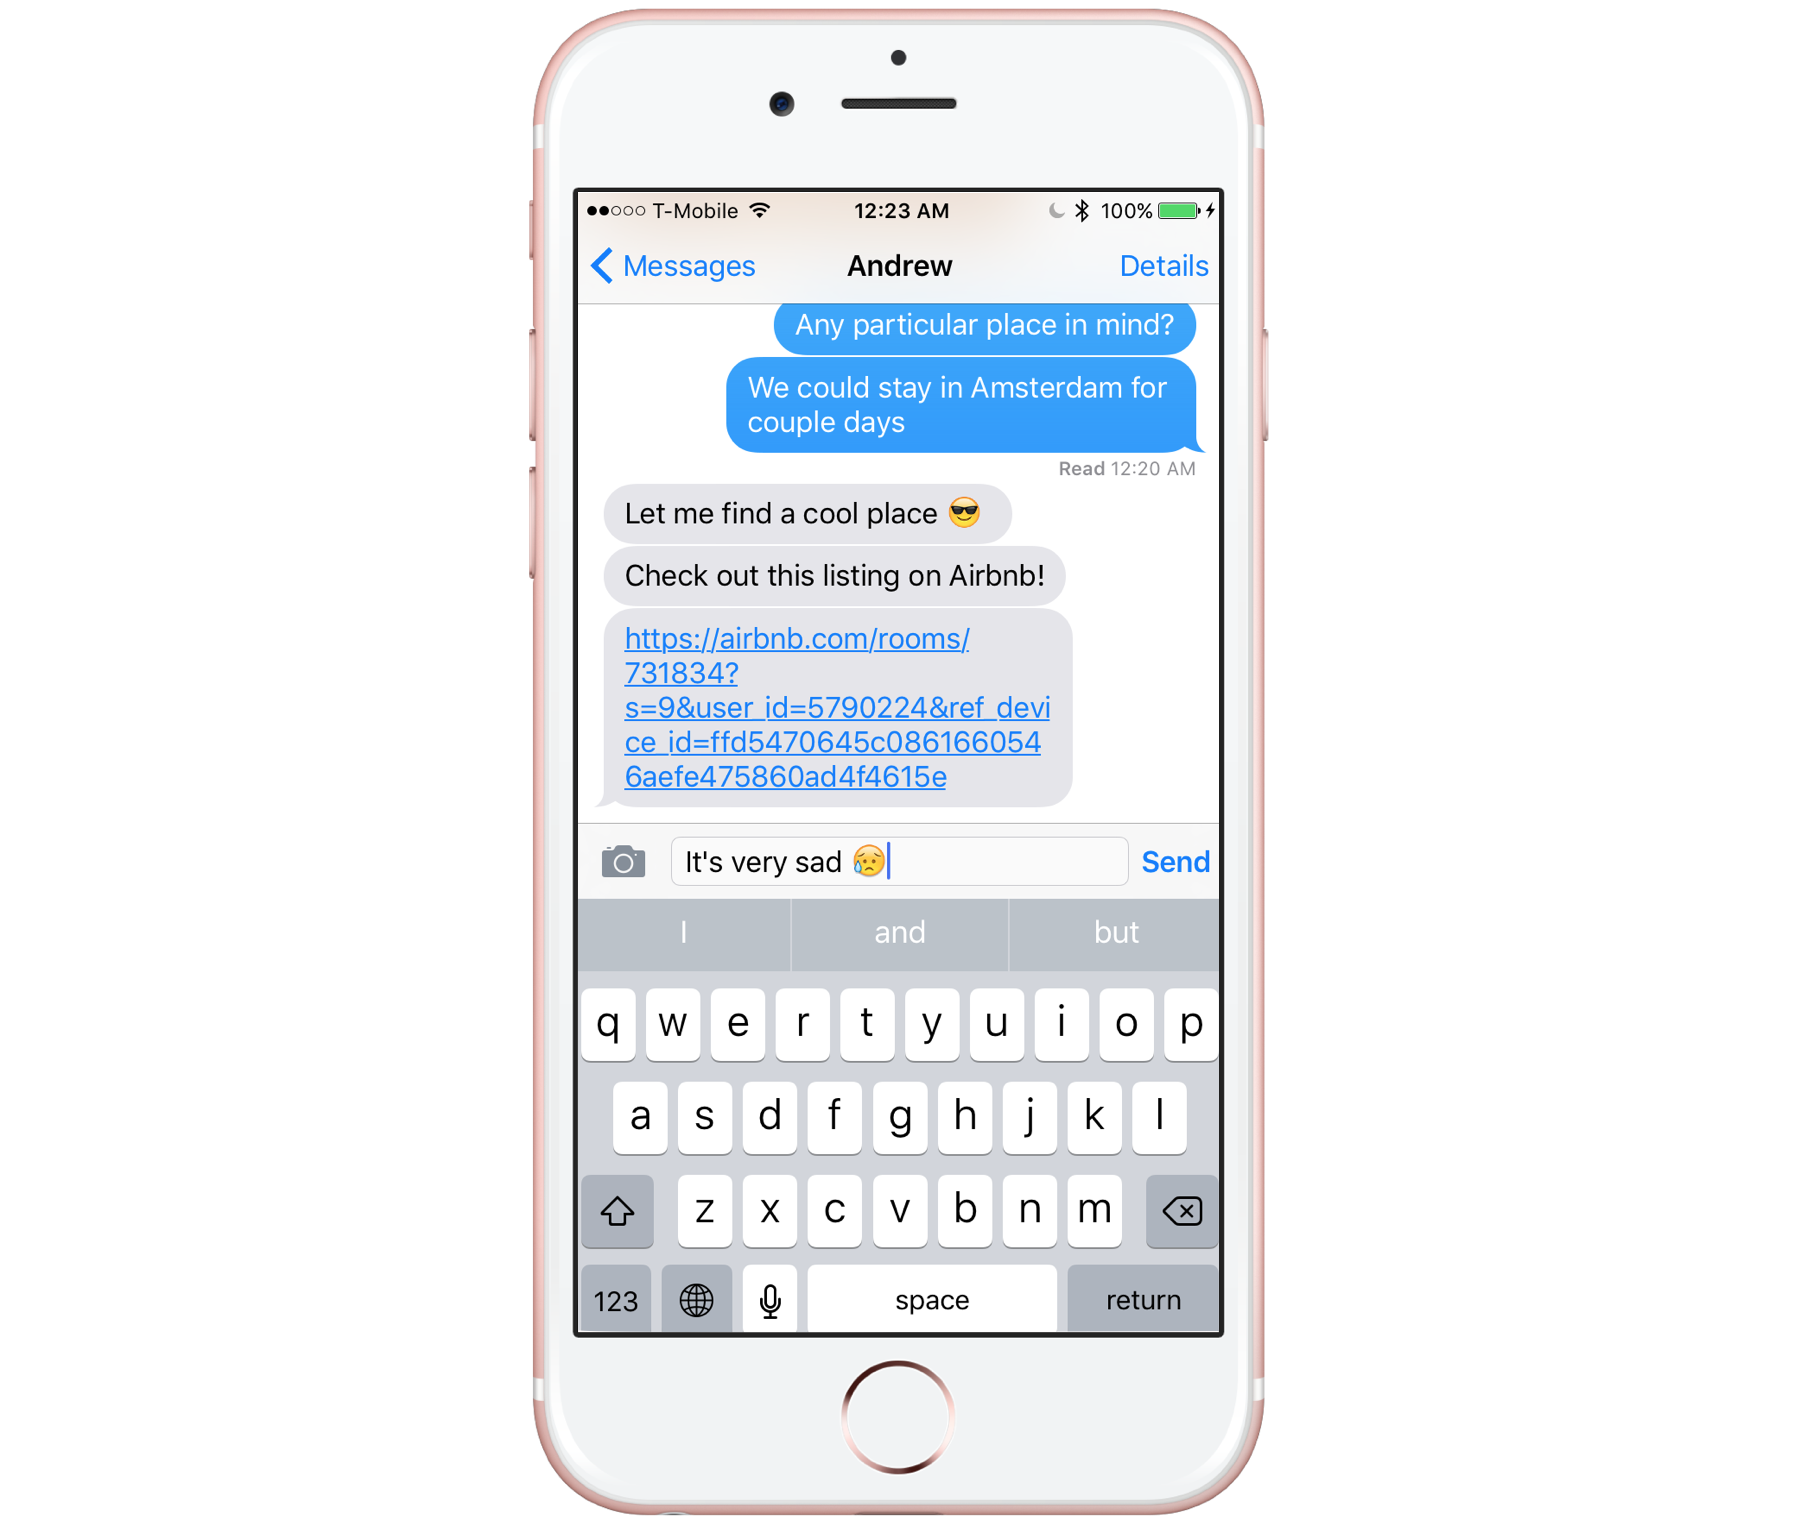 A new way to plan your trip: Introducing the Airbnb iMessage App